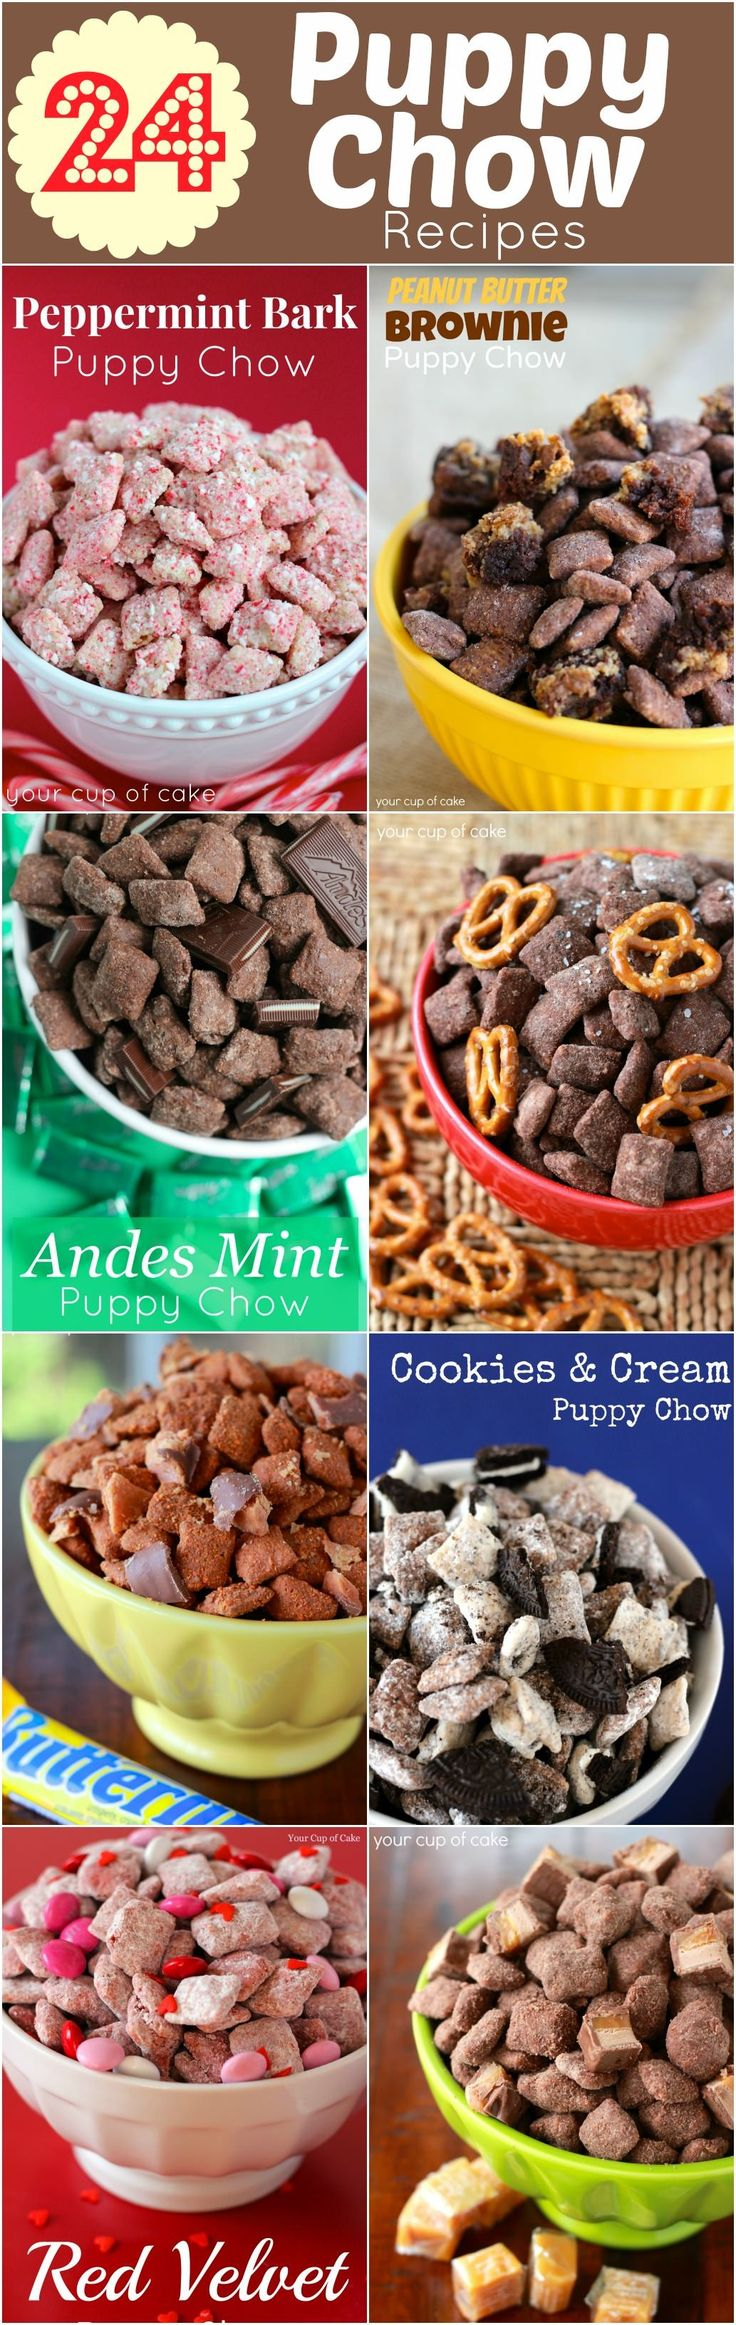 24 puppy chow recipes, I'm sure I've pinned this before but it's too tempting not to re-pin. So many choices!